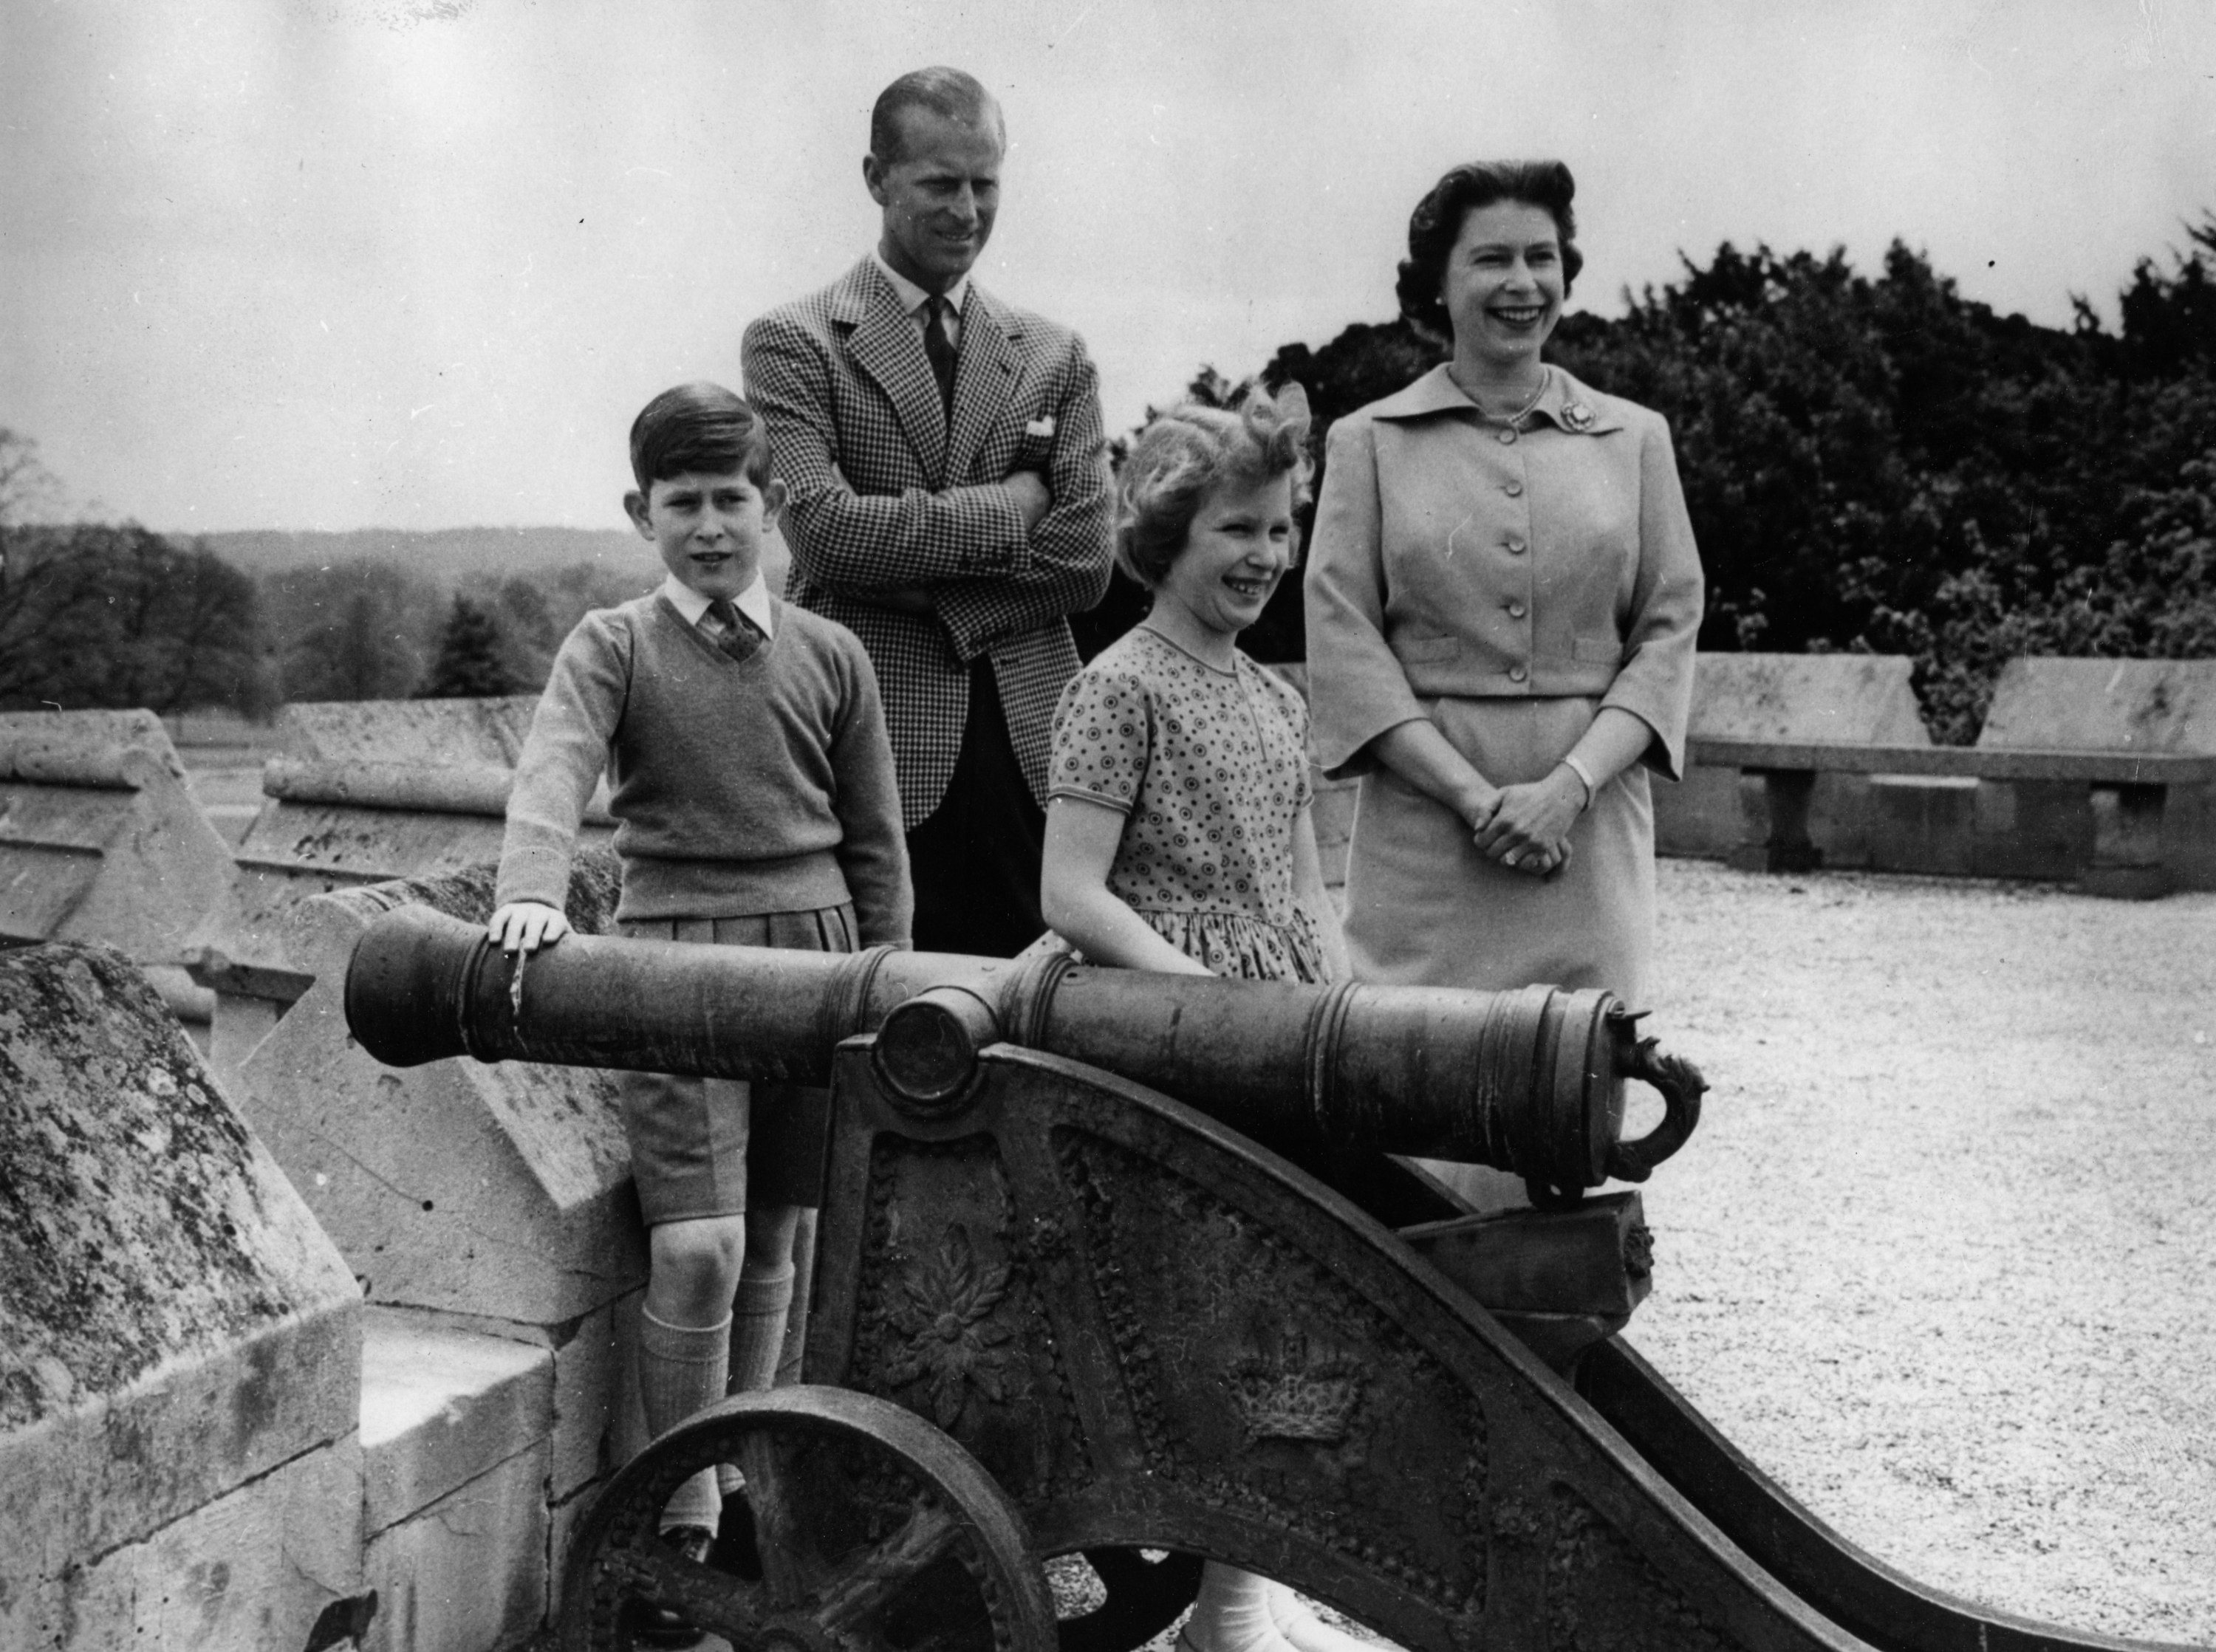 The family stands by a cannon overlooking the countryside